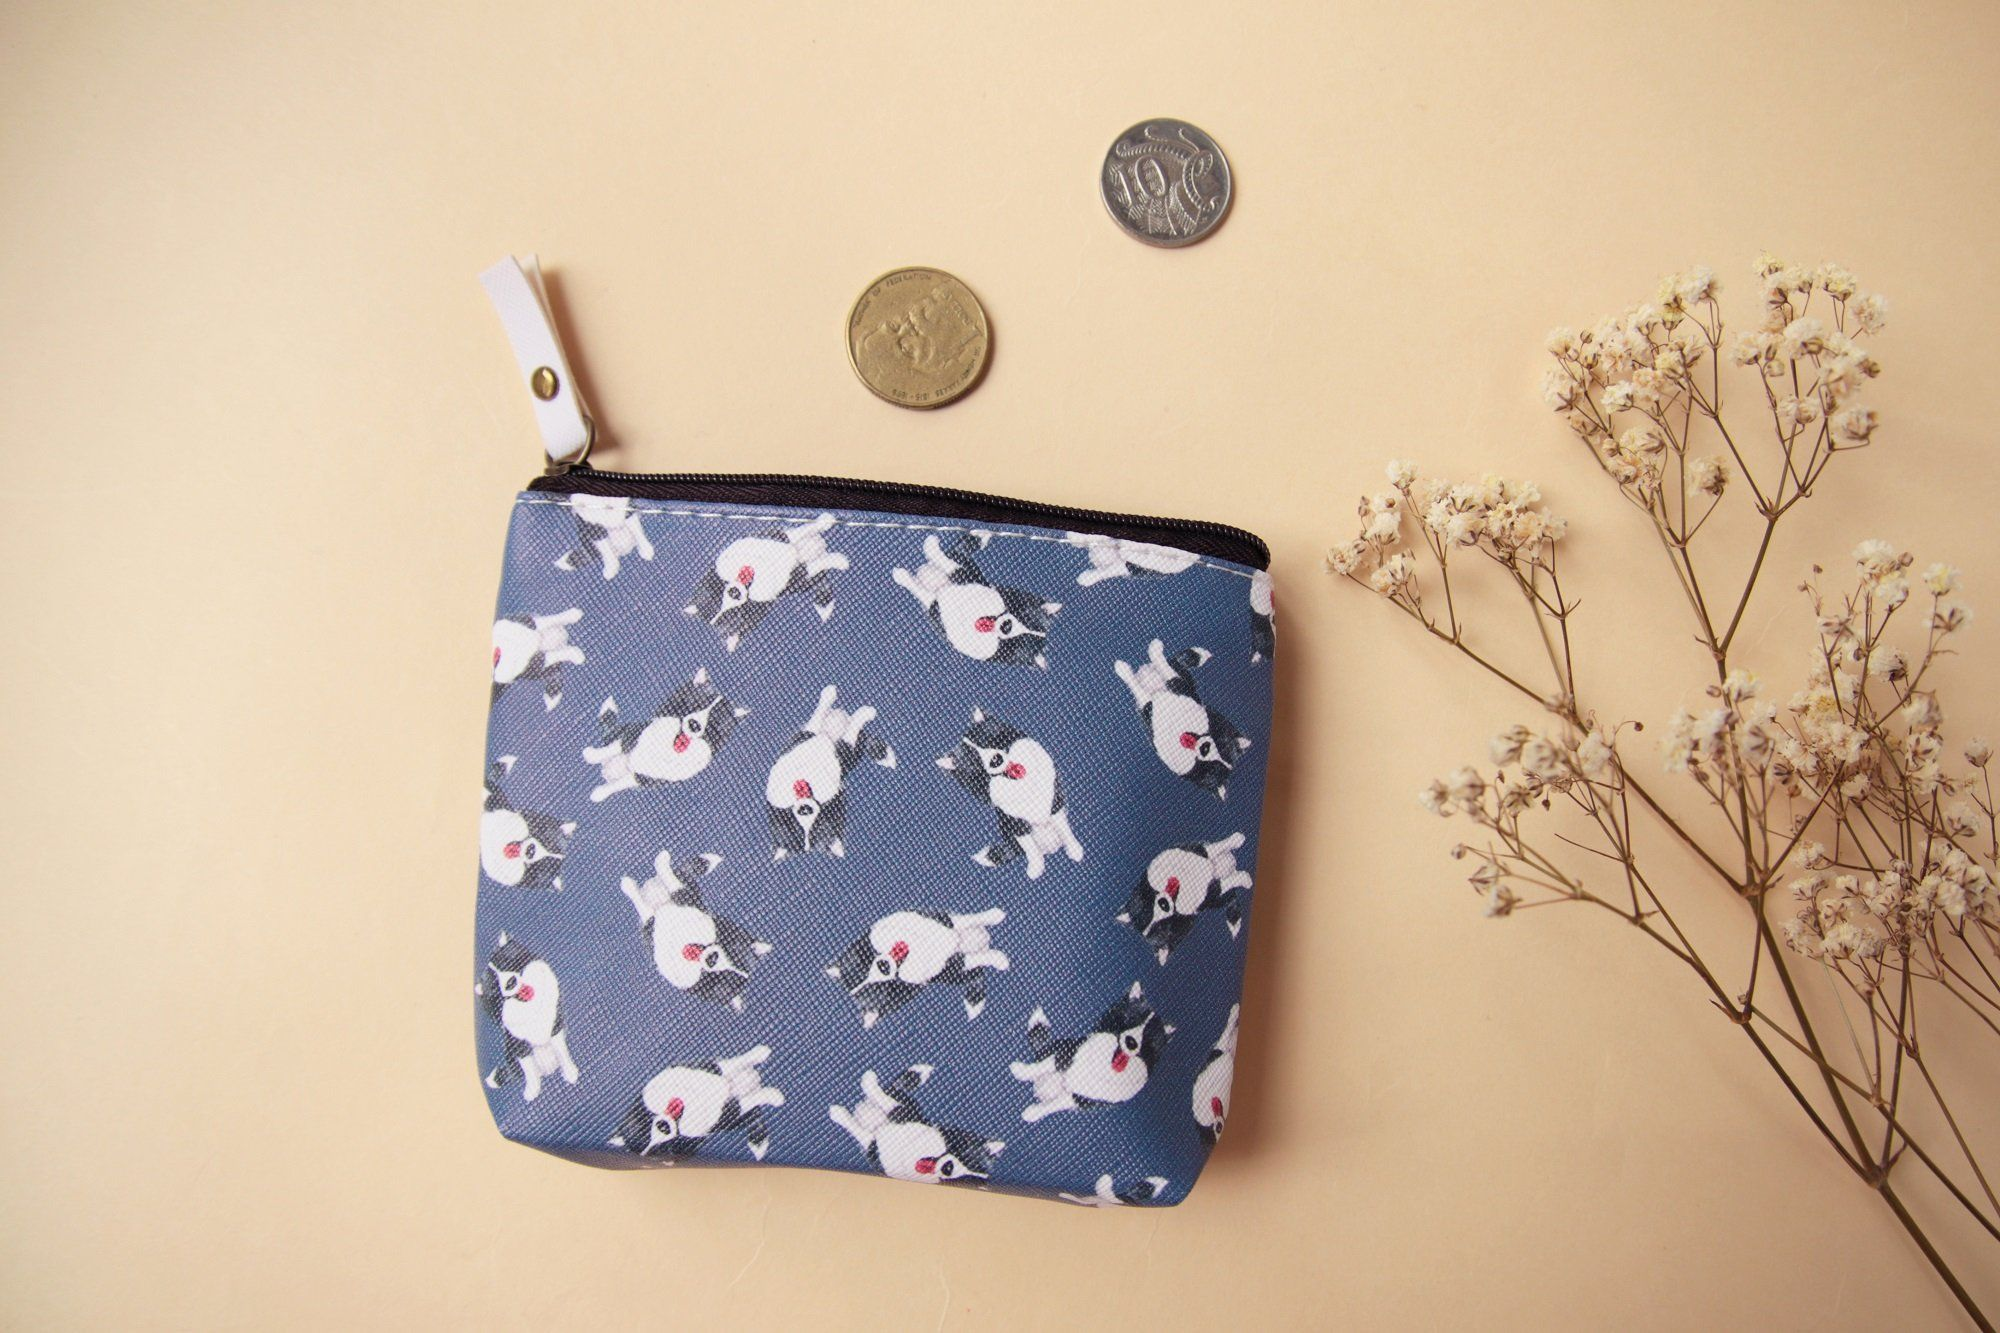 Momo Border Collie Coin Bag Coin pouches hopnbounce